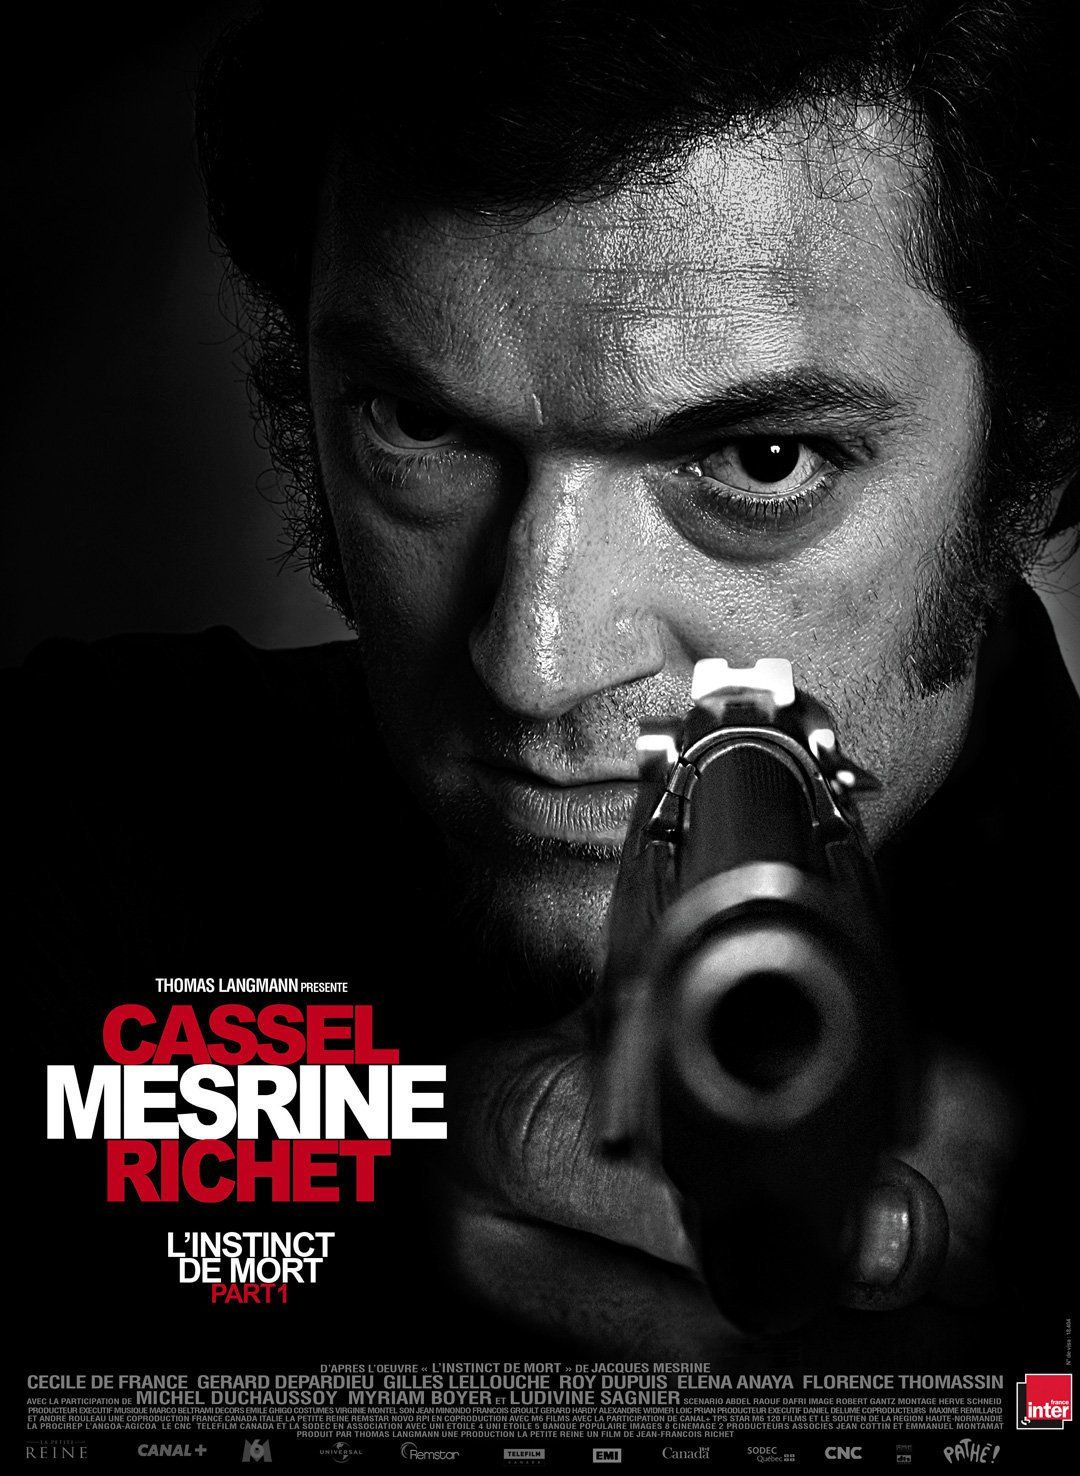 mesrine 1232re partie linstinct de mort film 2008